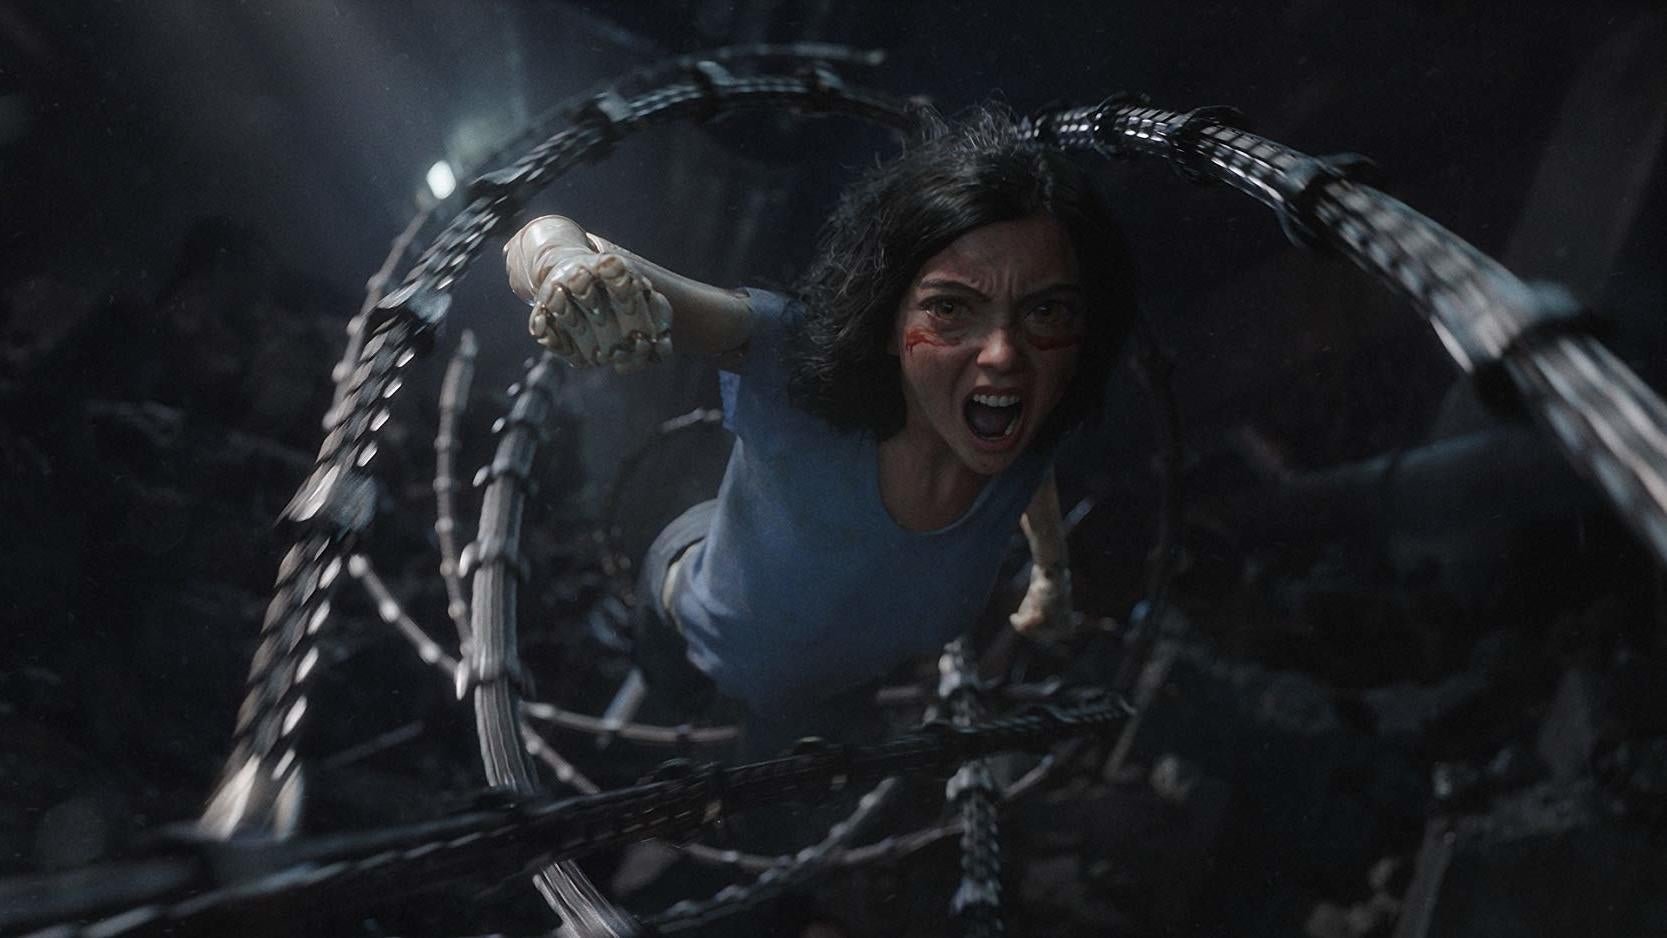 20th-century-fox alita-battle-angel battle-angel-alita edward-norton io9 jai-courtney james-cameron michelle-rodriguez robert-rodriguez rosa-salazar yukito-kishiro